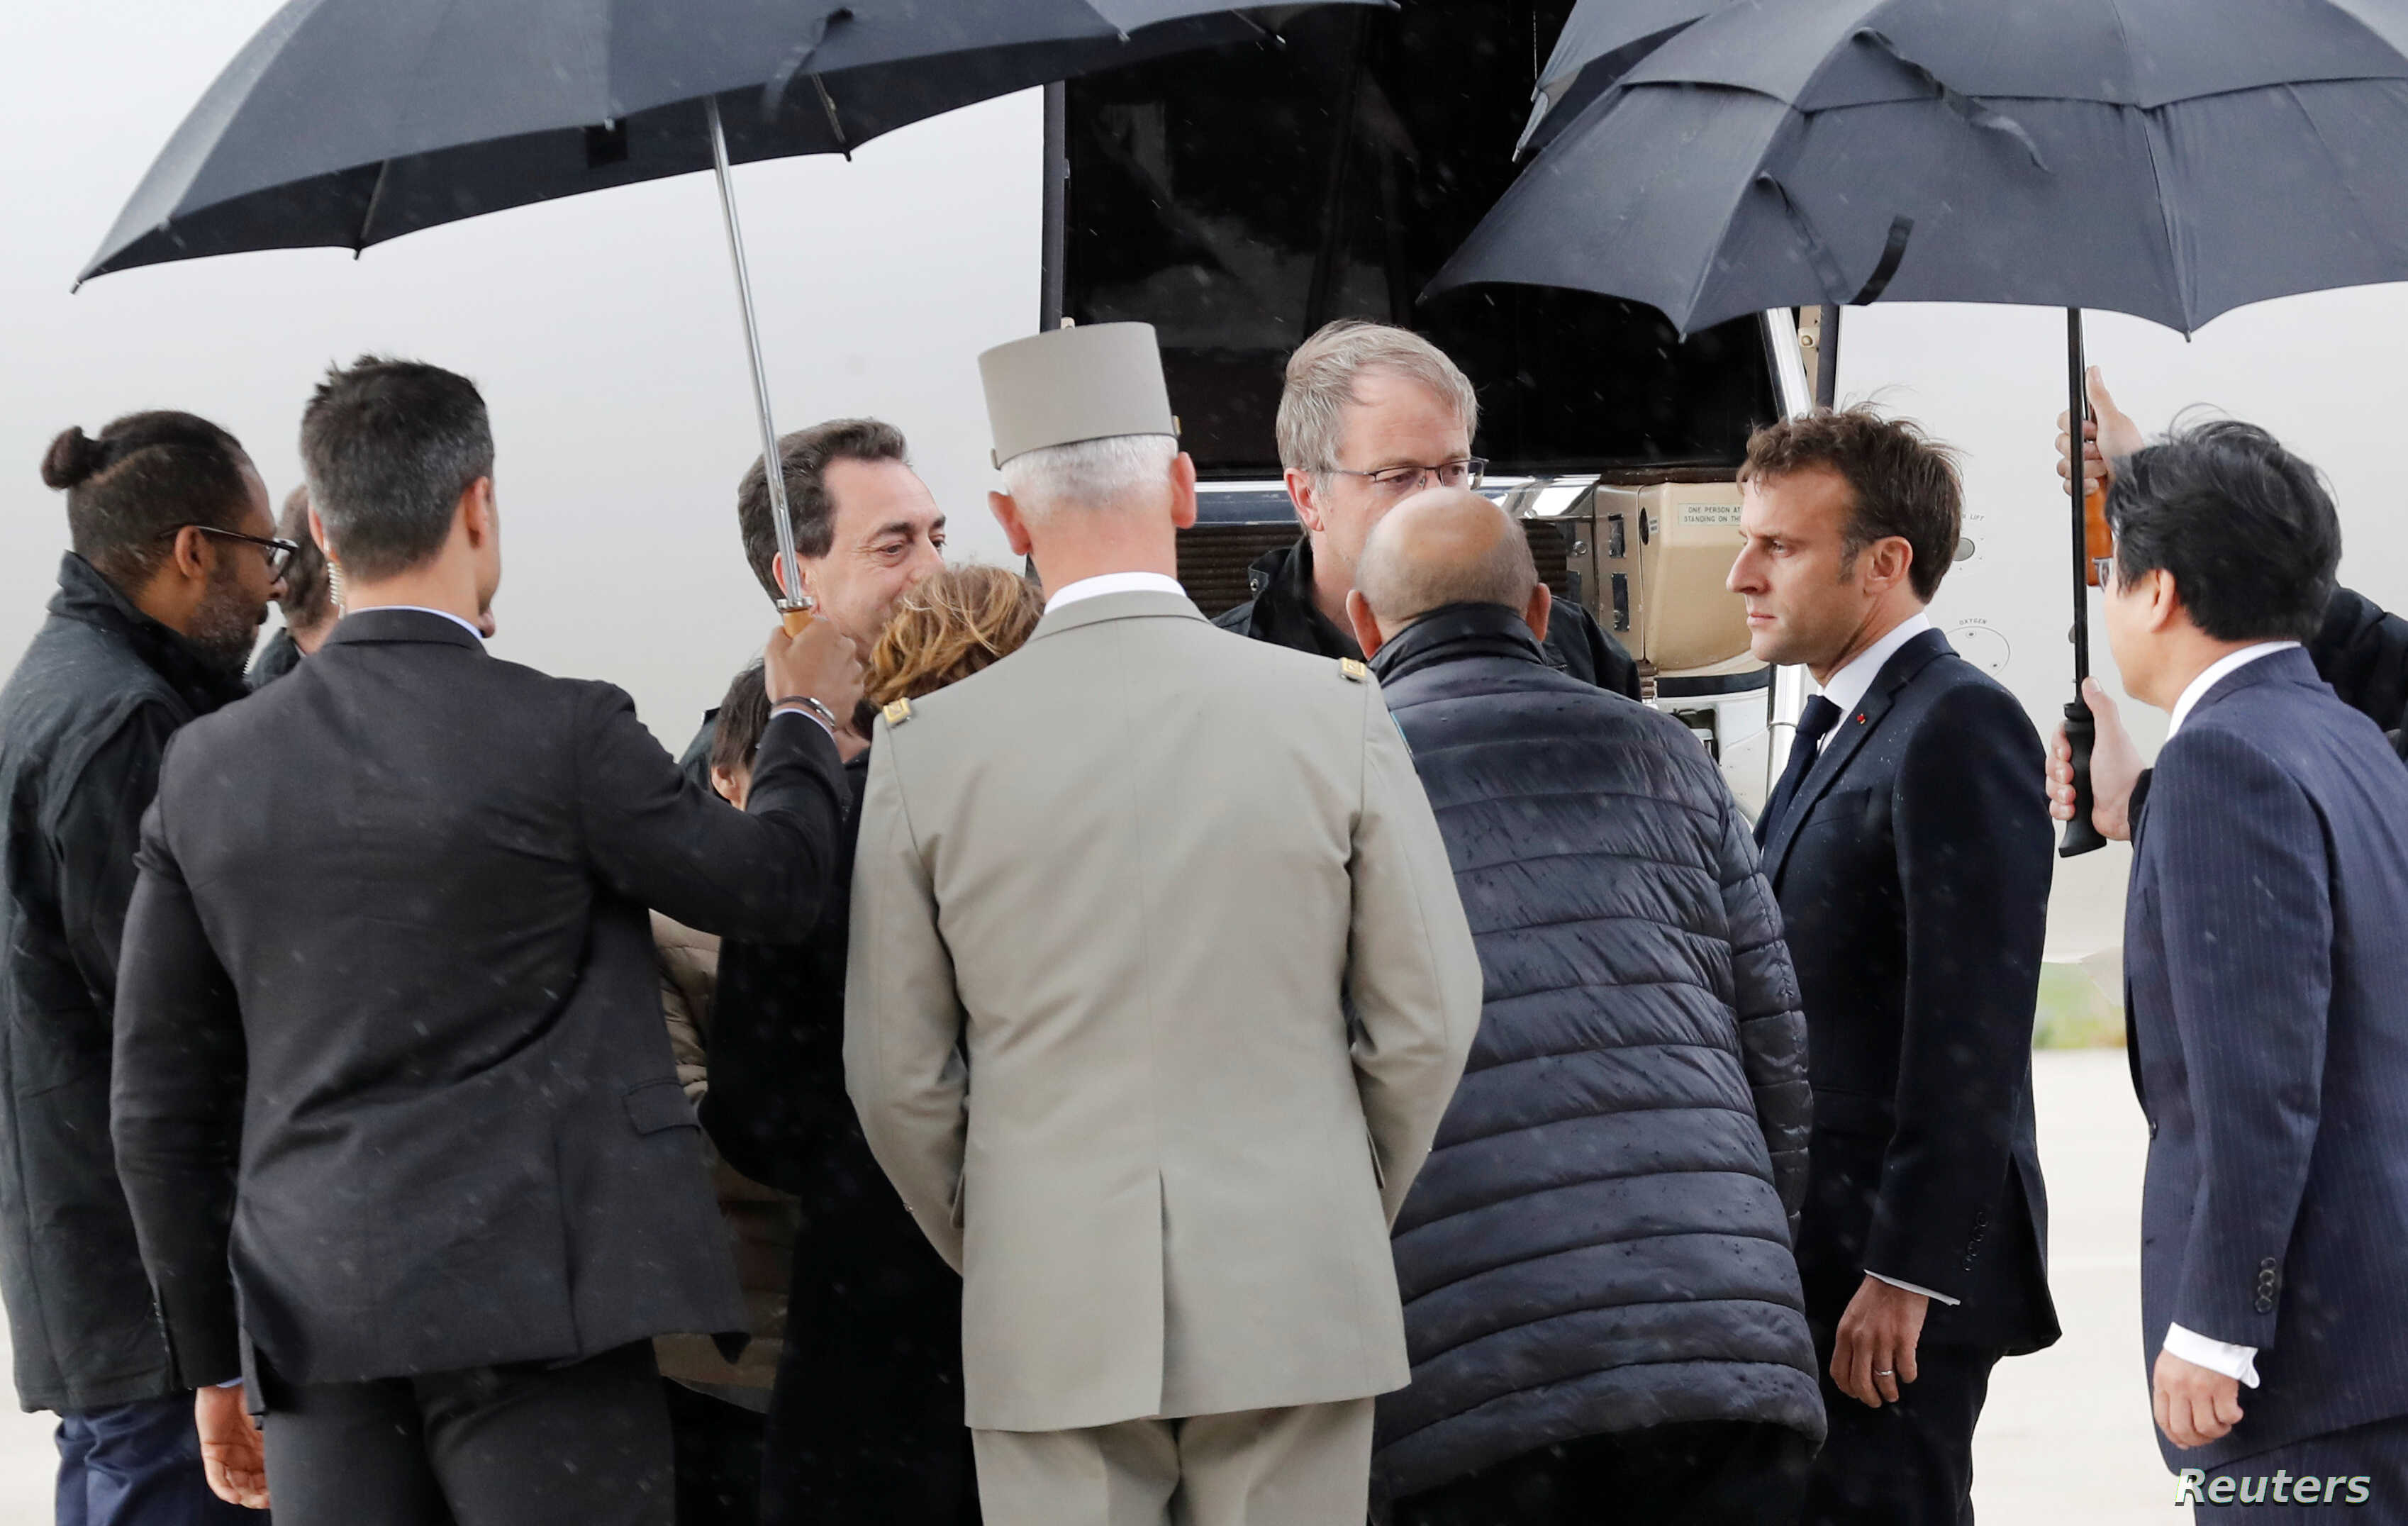 French President Emmanuel Macron greets hostages who were freed by special forces in Burkina Faso upon their arrival at the Villacoublay airport, in Velizy-Villacoublay, France, May 11, 2019.